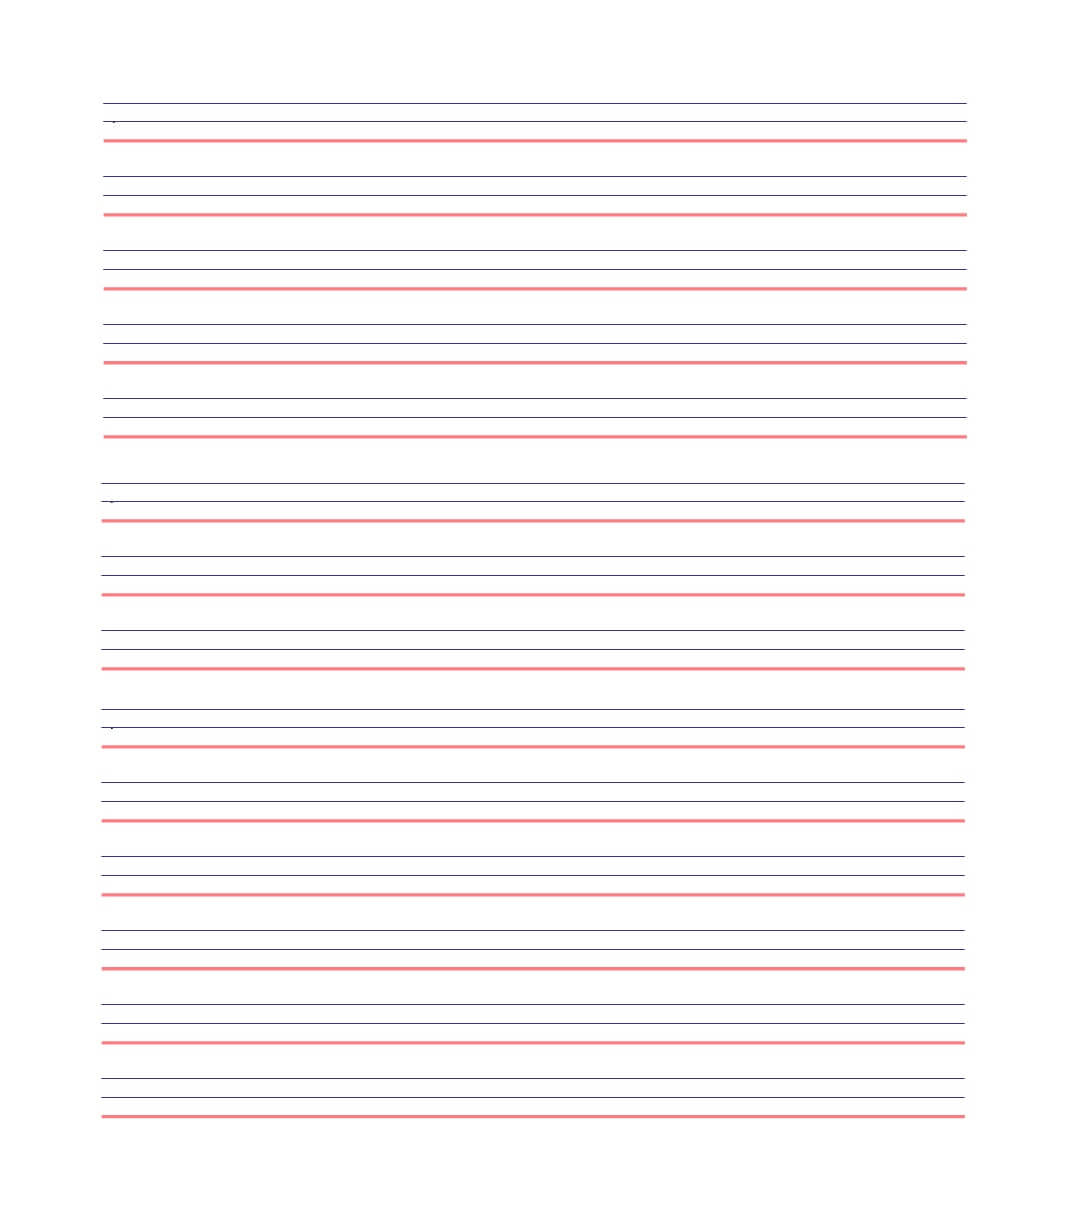 32 Printable Lined Paper Templates ᐅ Template Lab Intended For Ruled Paper Template Word